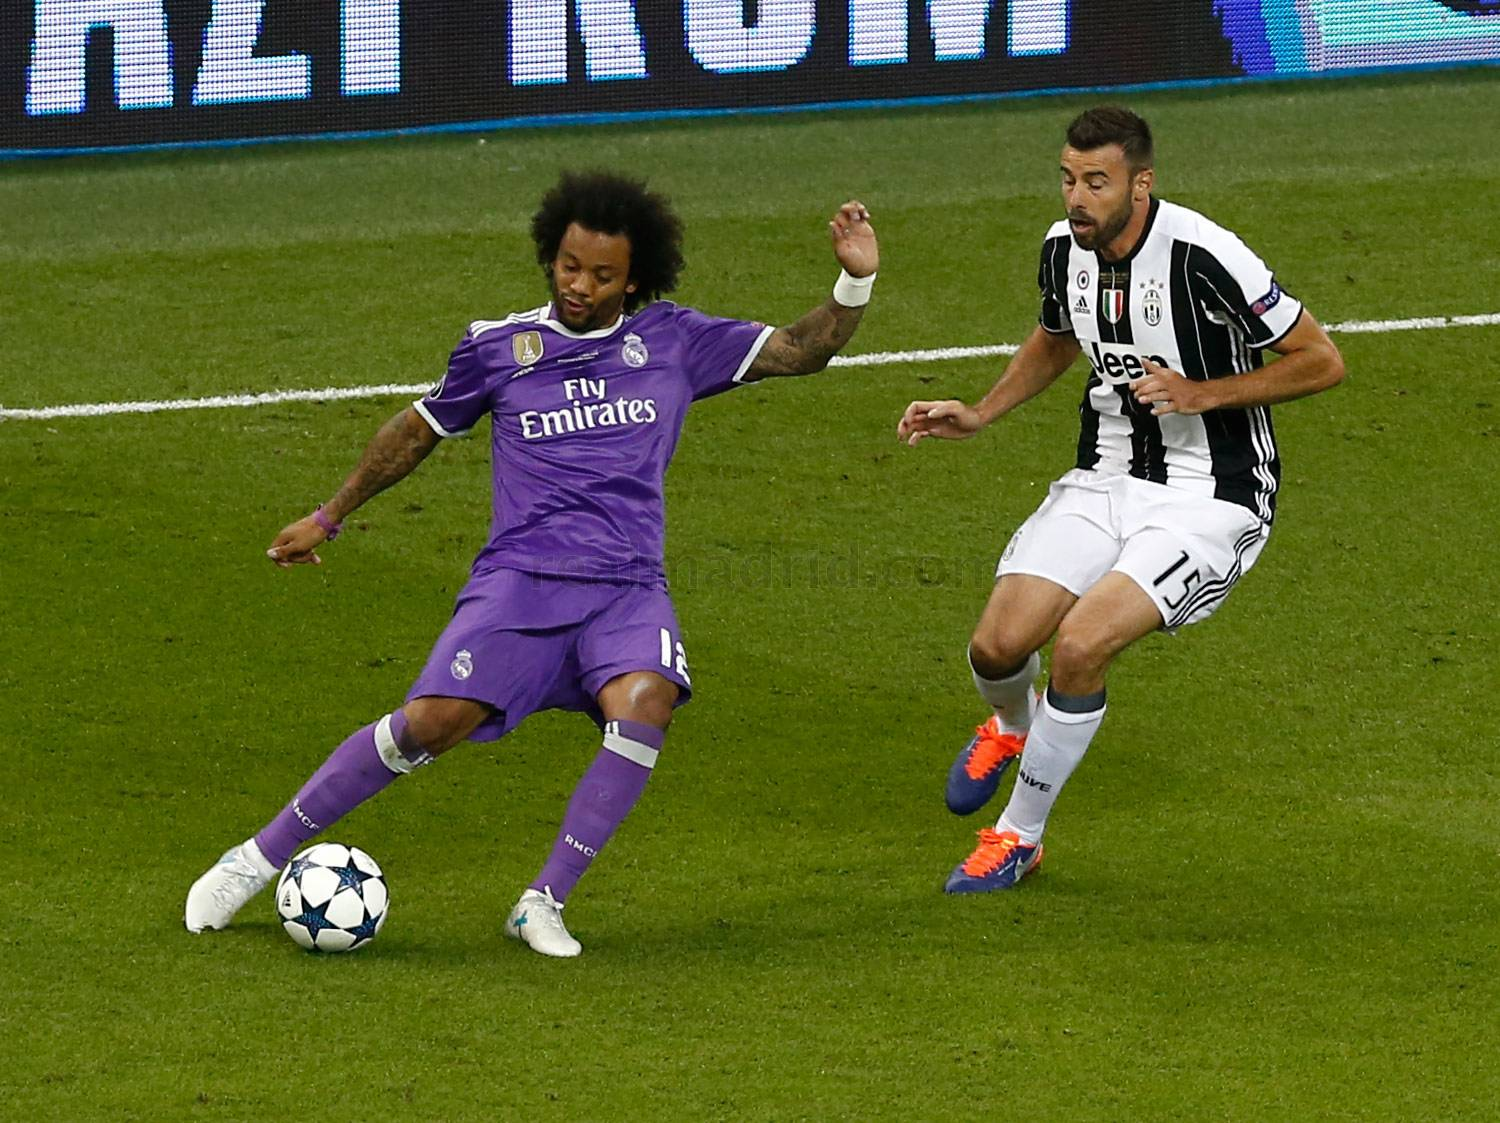 Juventus - Real Madrid | fotos | Real Madrid CF